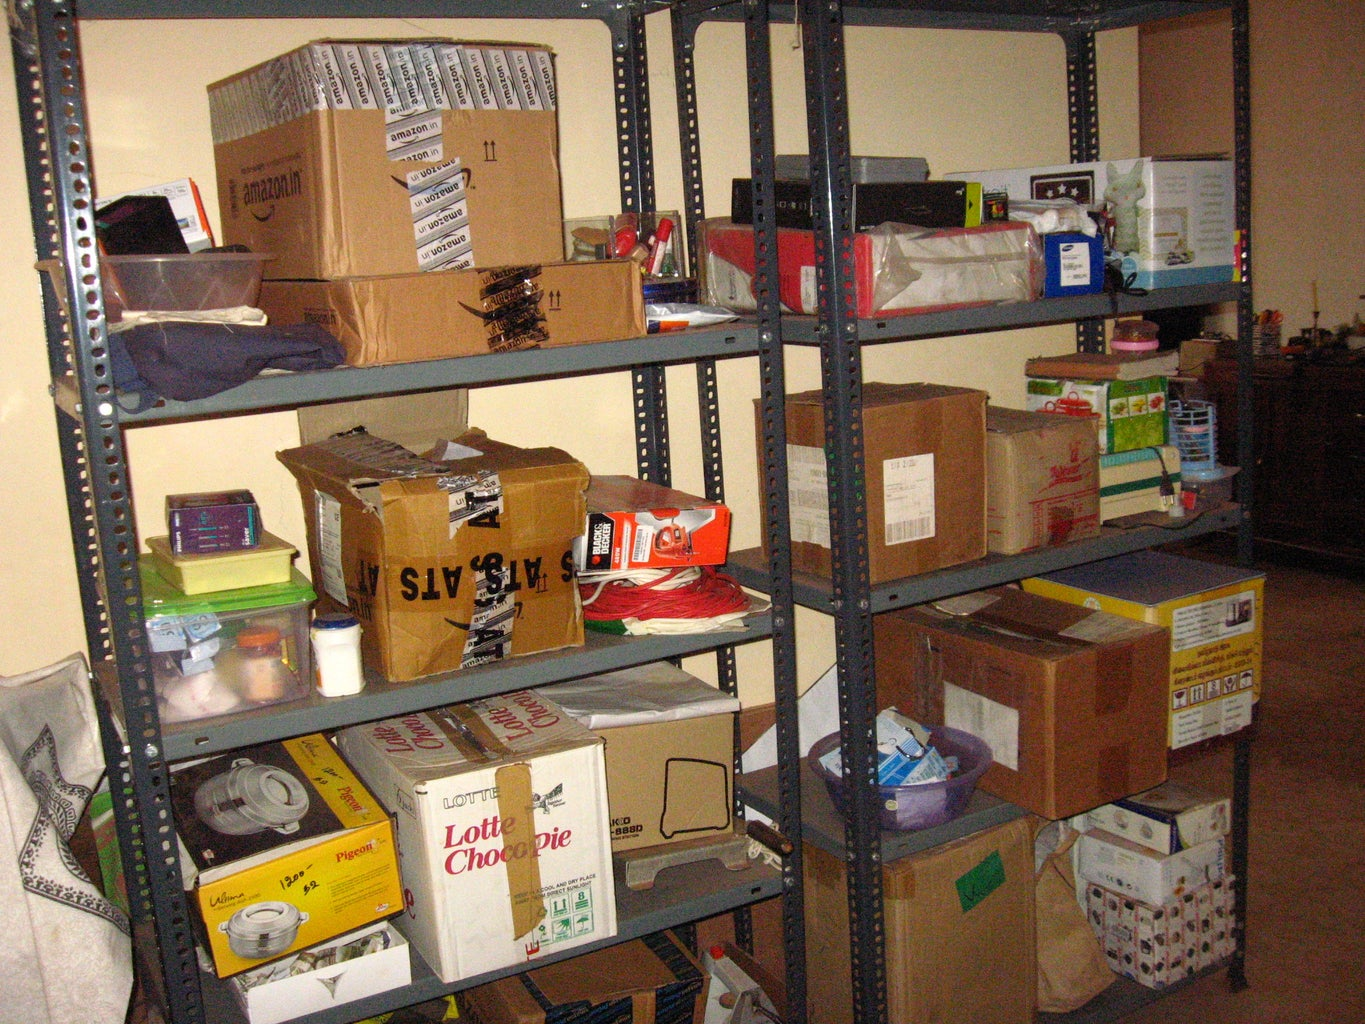 Home Improvement: Make Storage Racks for Tools and Accessories